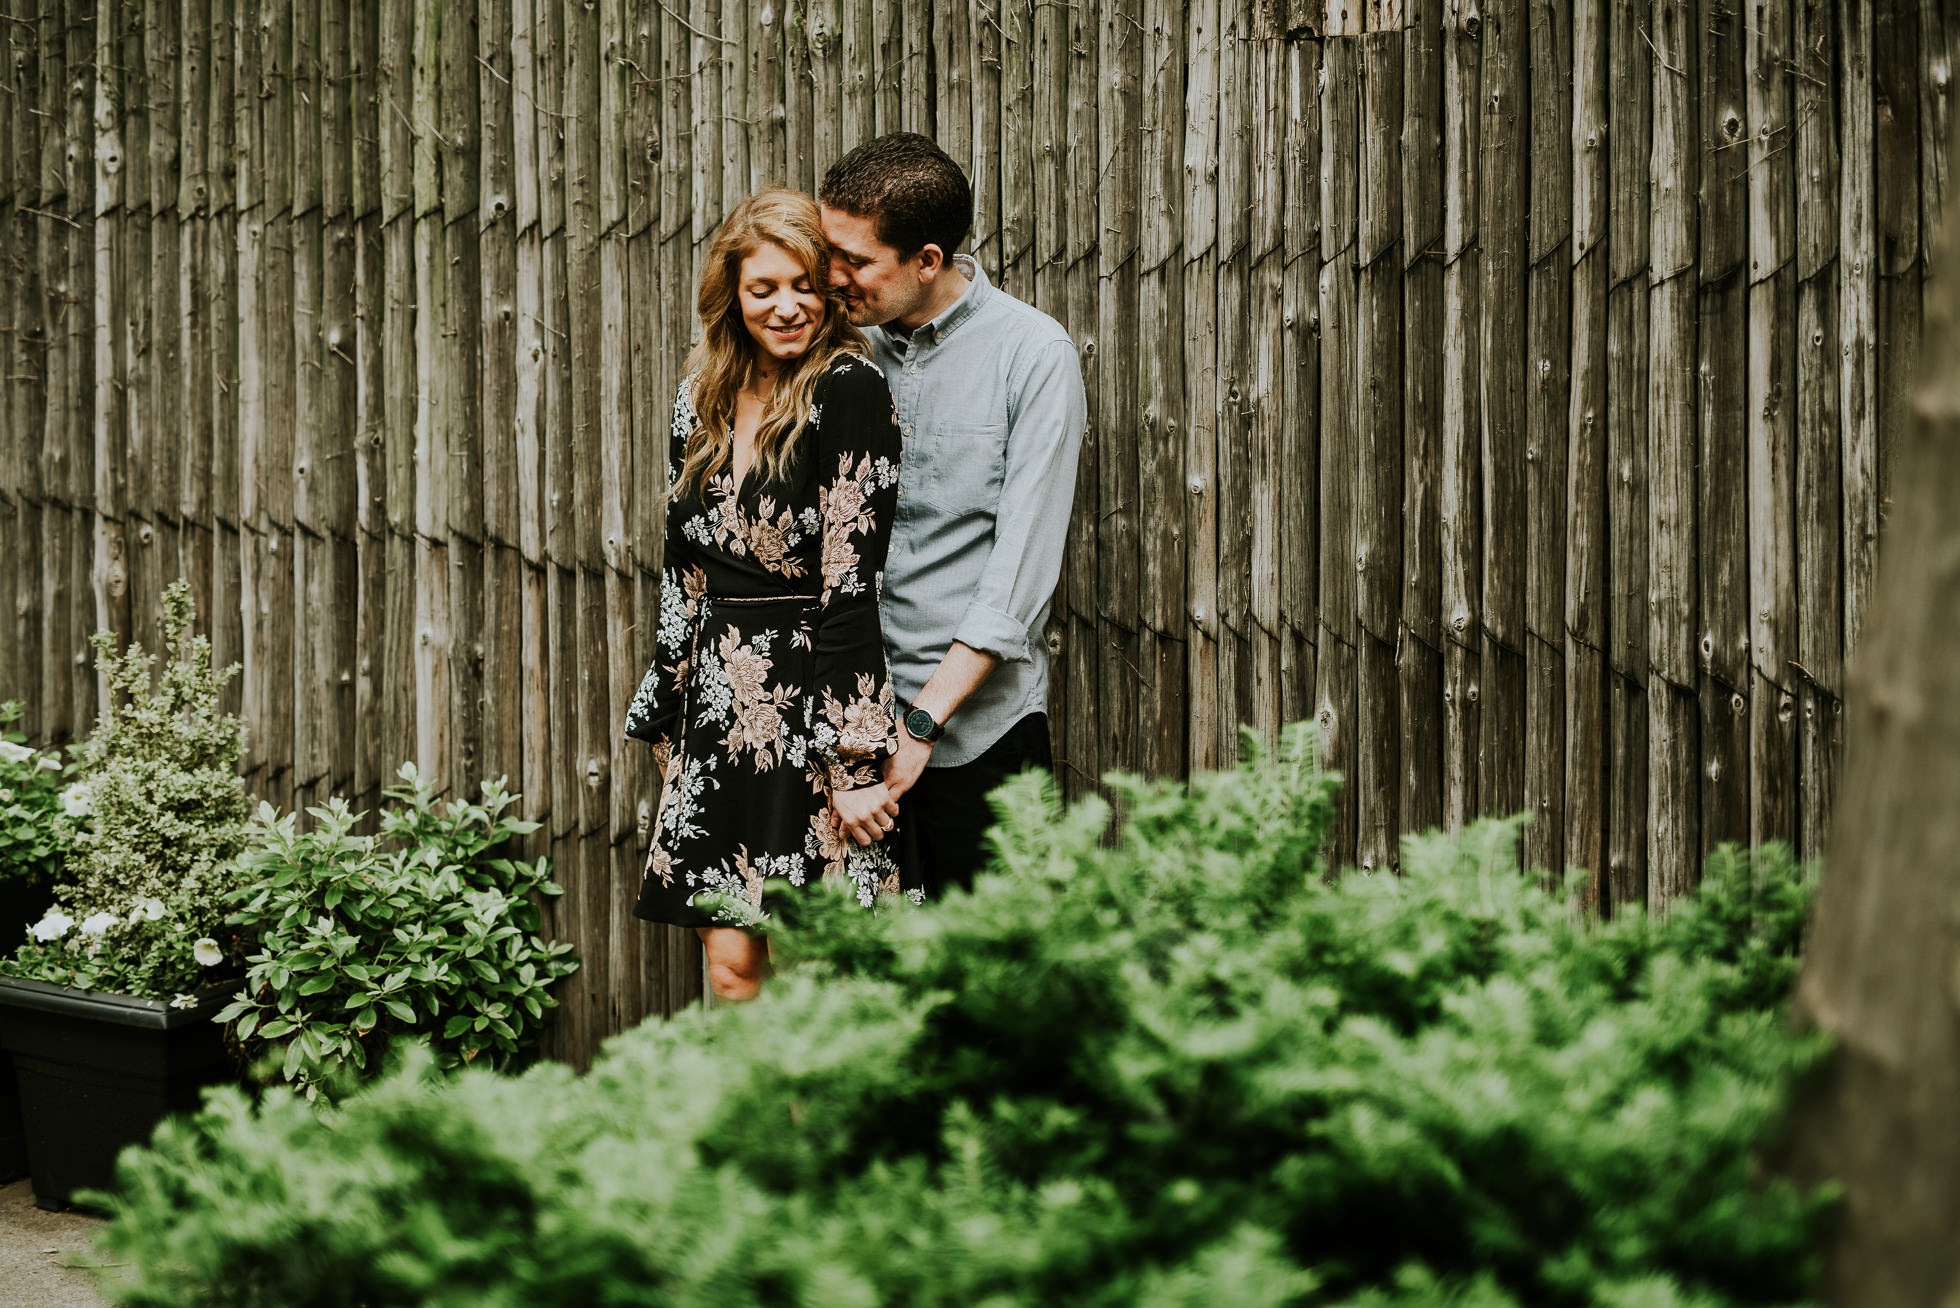 nyc wedding photo locations photographed by Traverse the Tides34